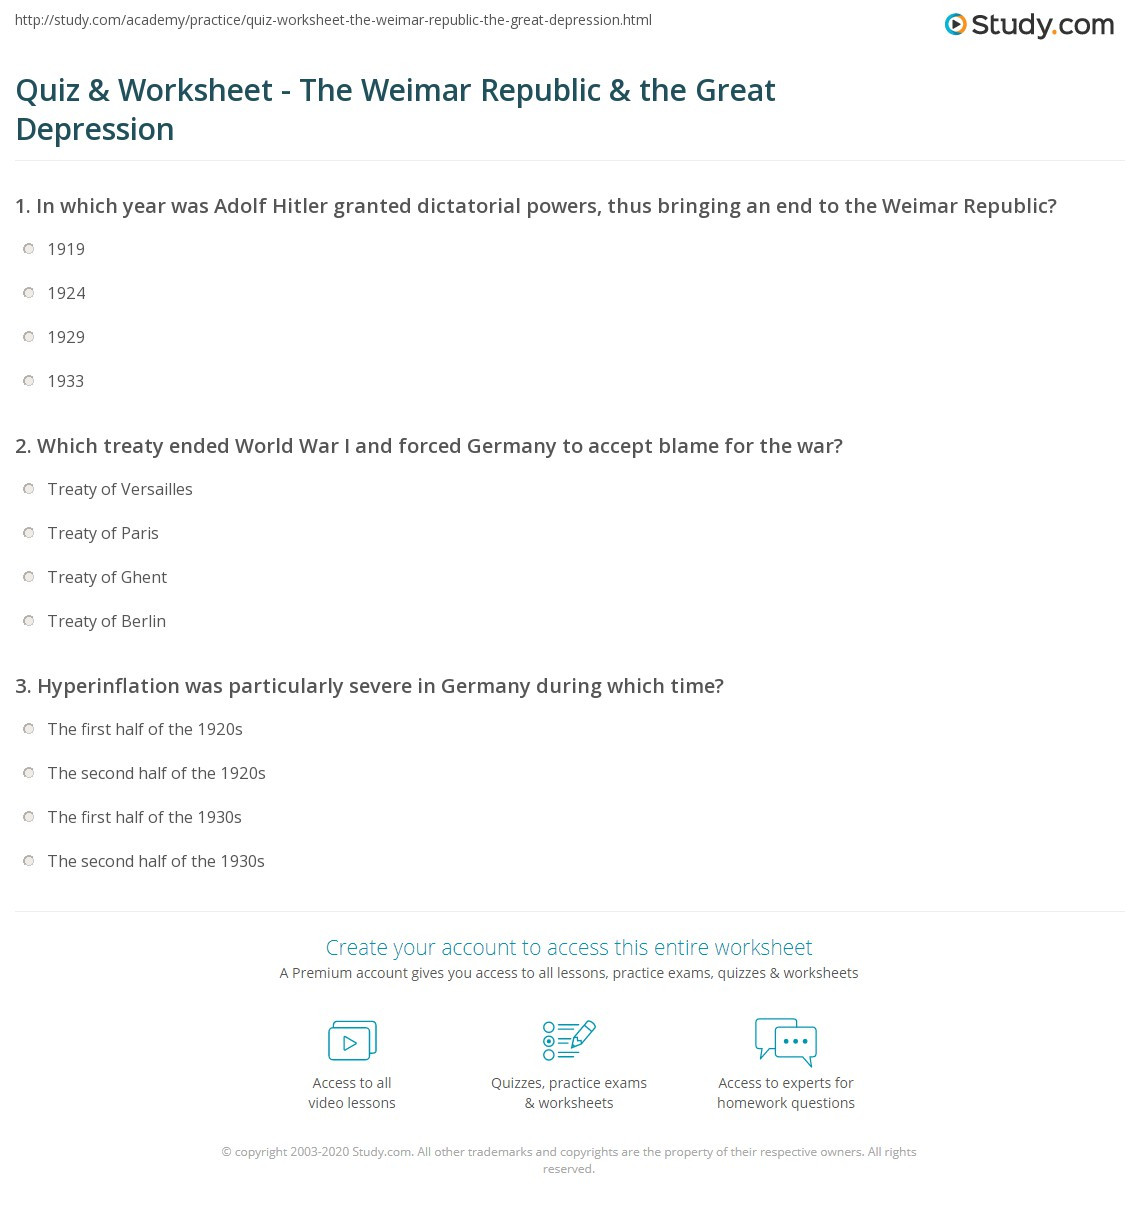 The Great Depression Worksheet Quiz & Worksheet the Weimar Republic & the Great